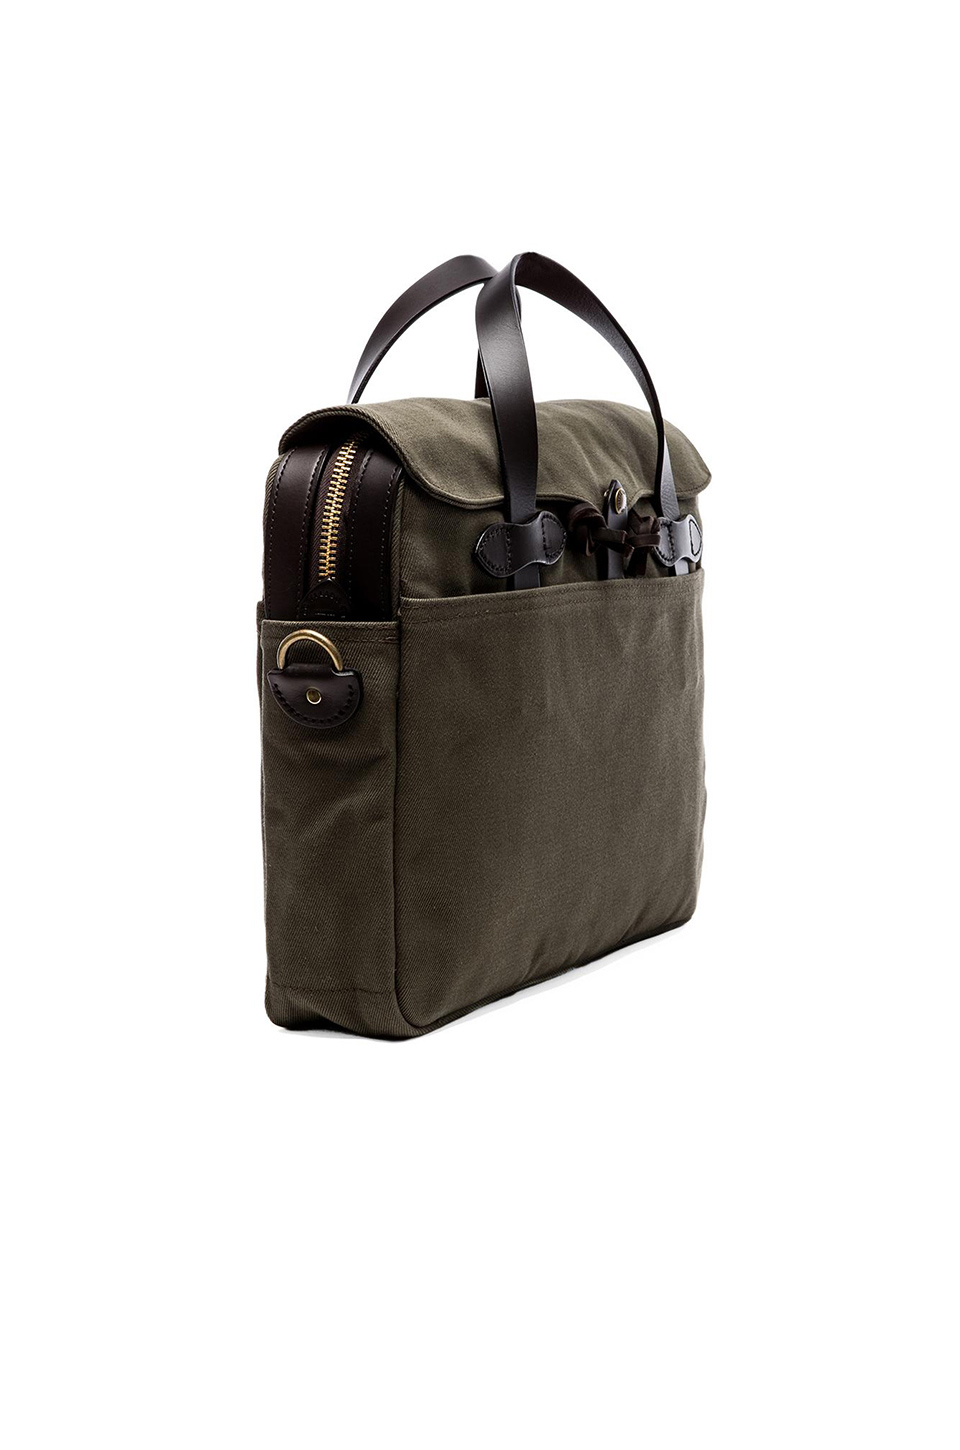 Filson Original Briefcase in Otter Green